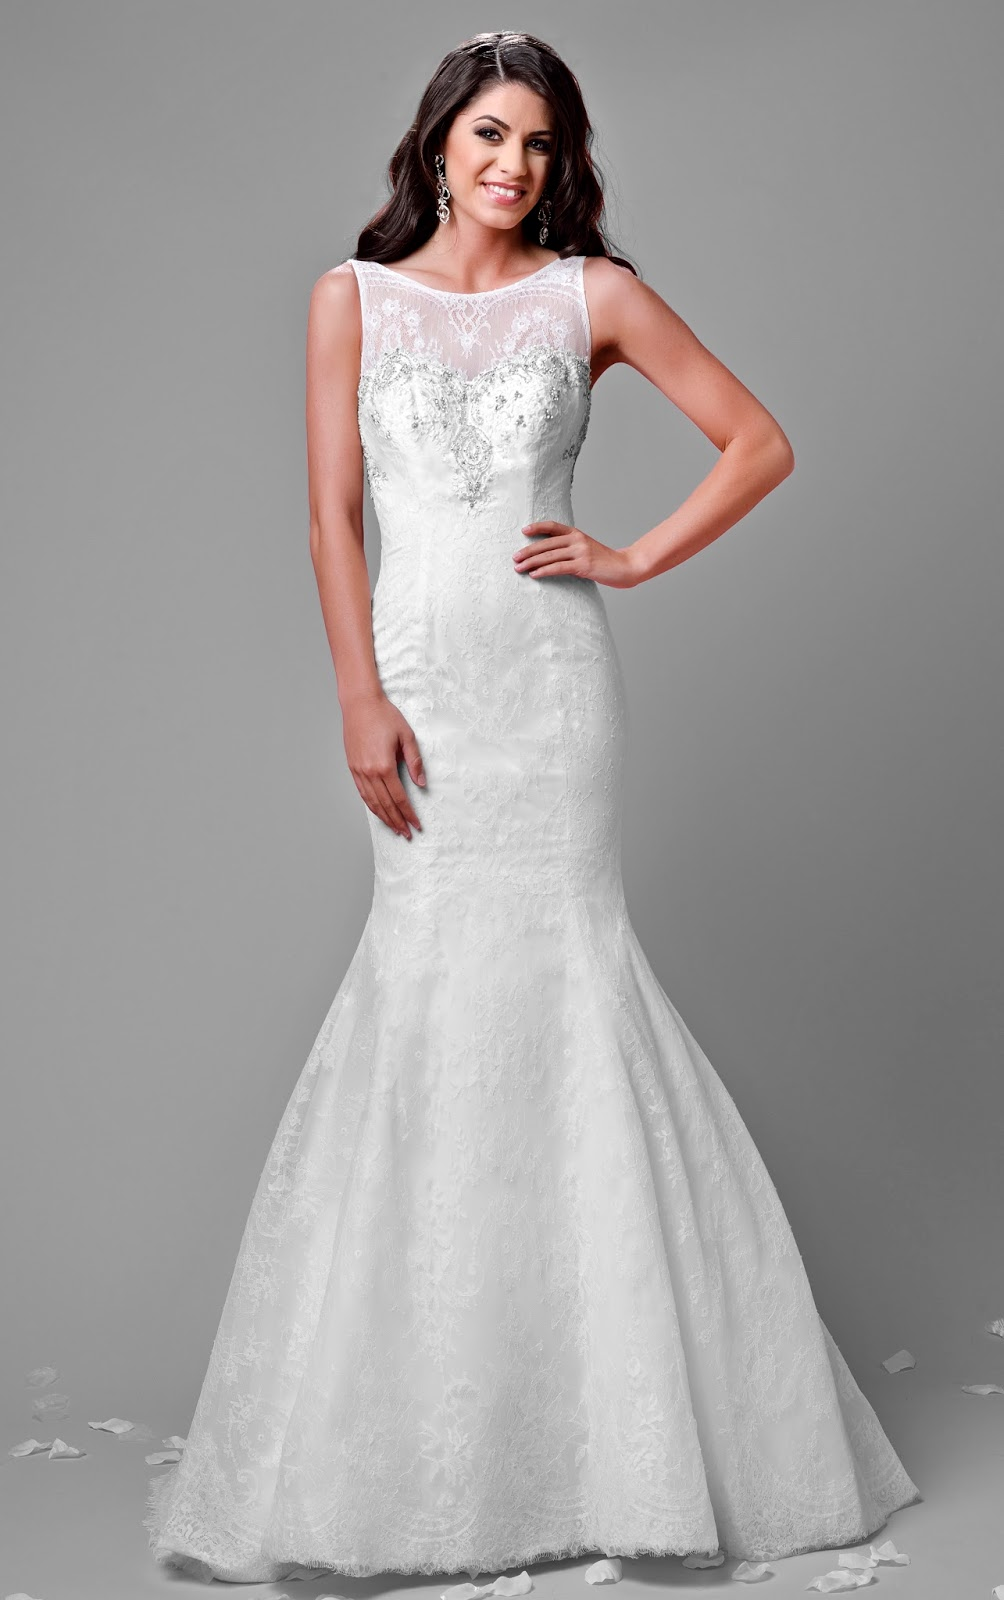 21a4c51215954 Maternity Wedding Dresses For Sale